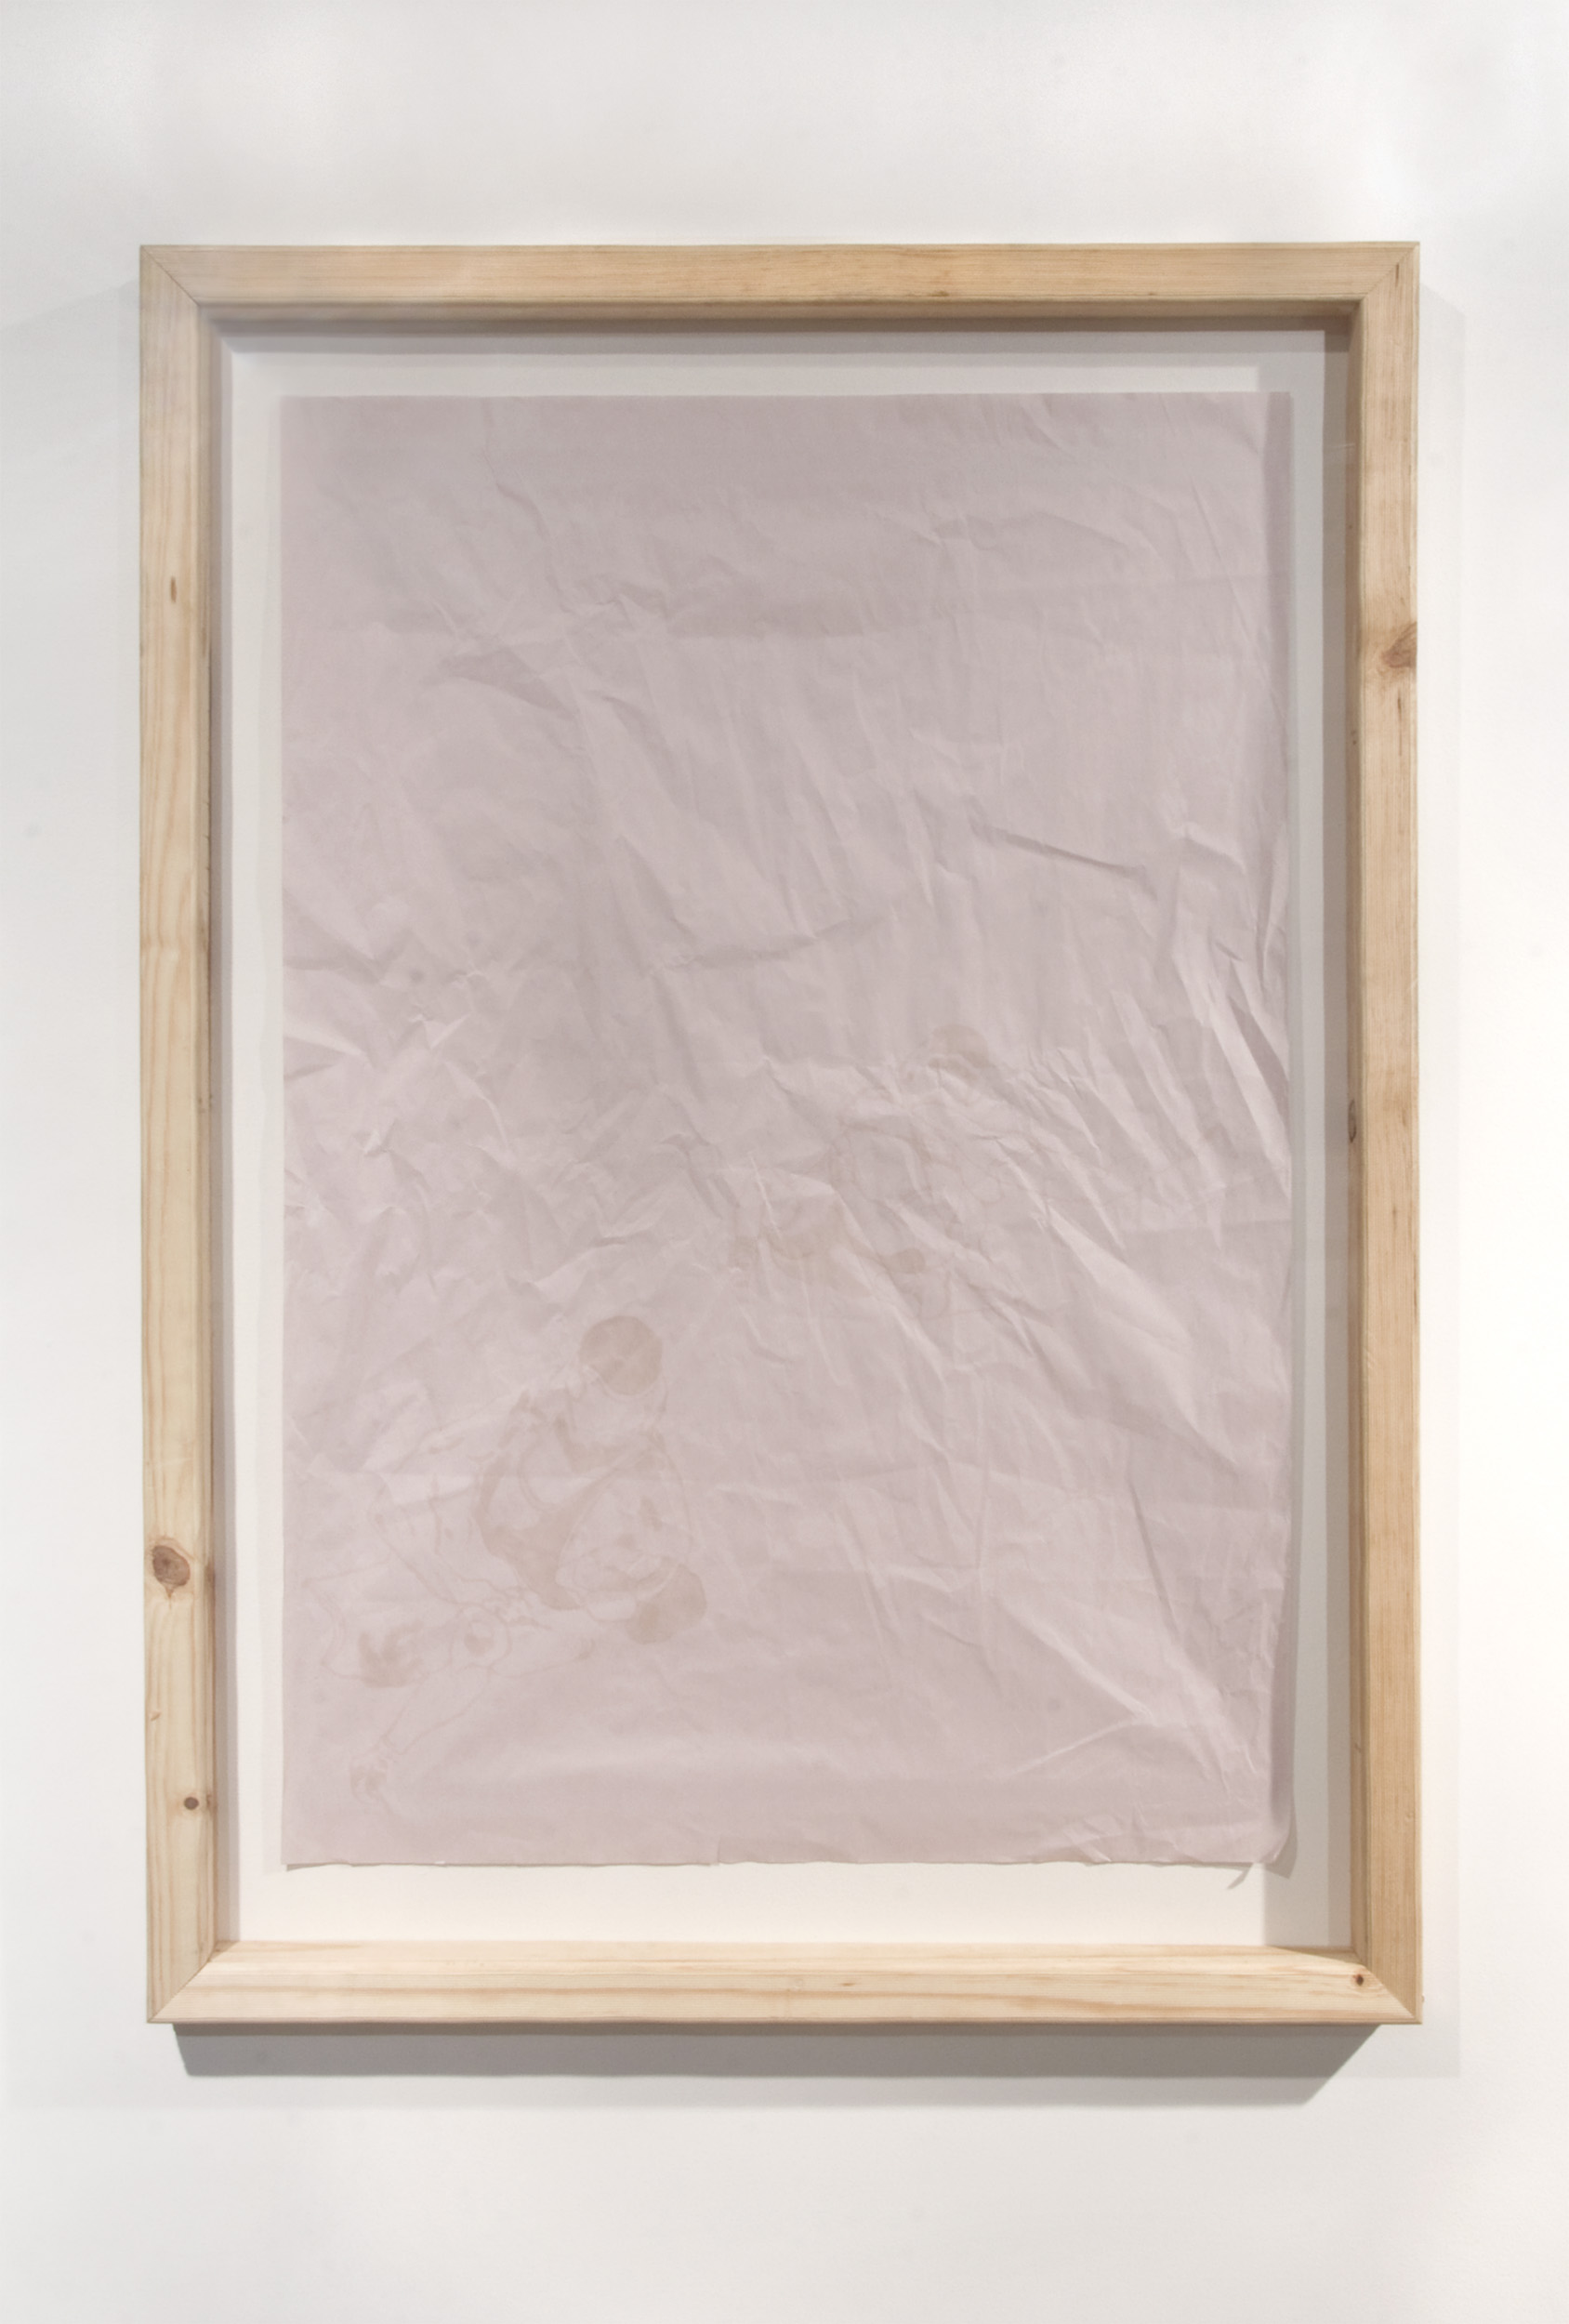 Wrestlers (drawings) , ink on paper, structural timber and glass. Collaborative work with  Llewellyn Millhouse .